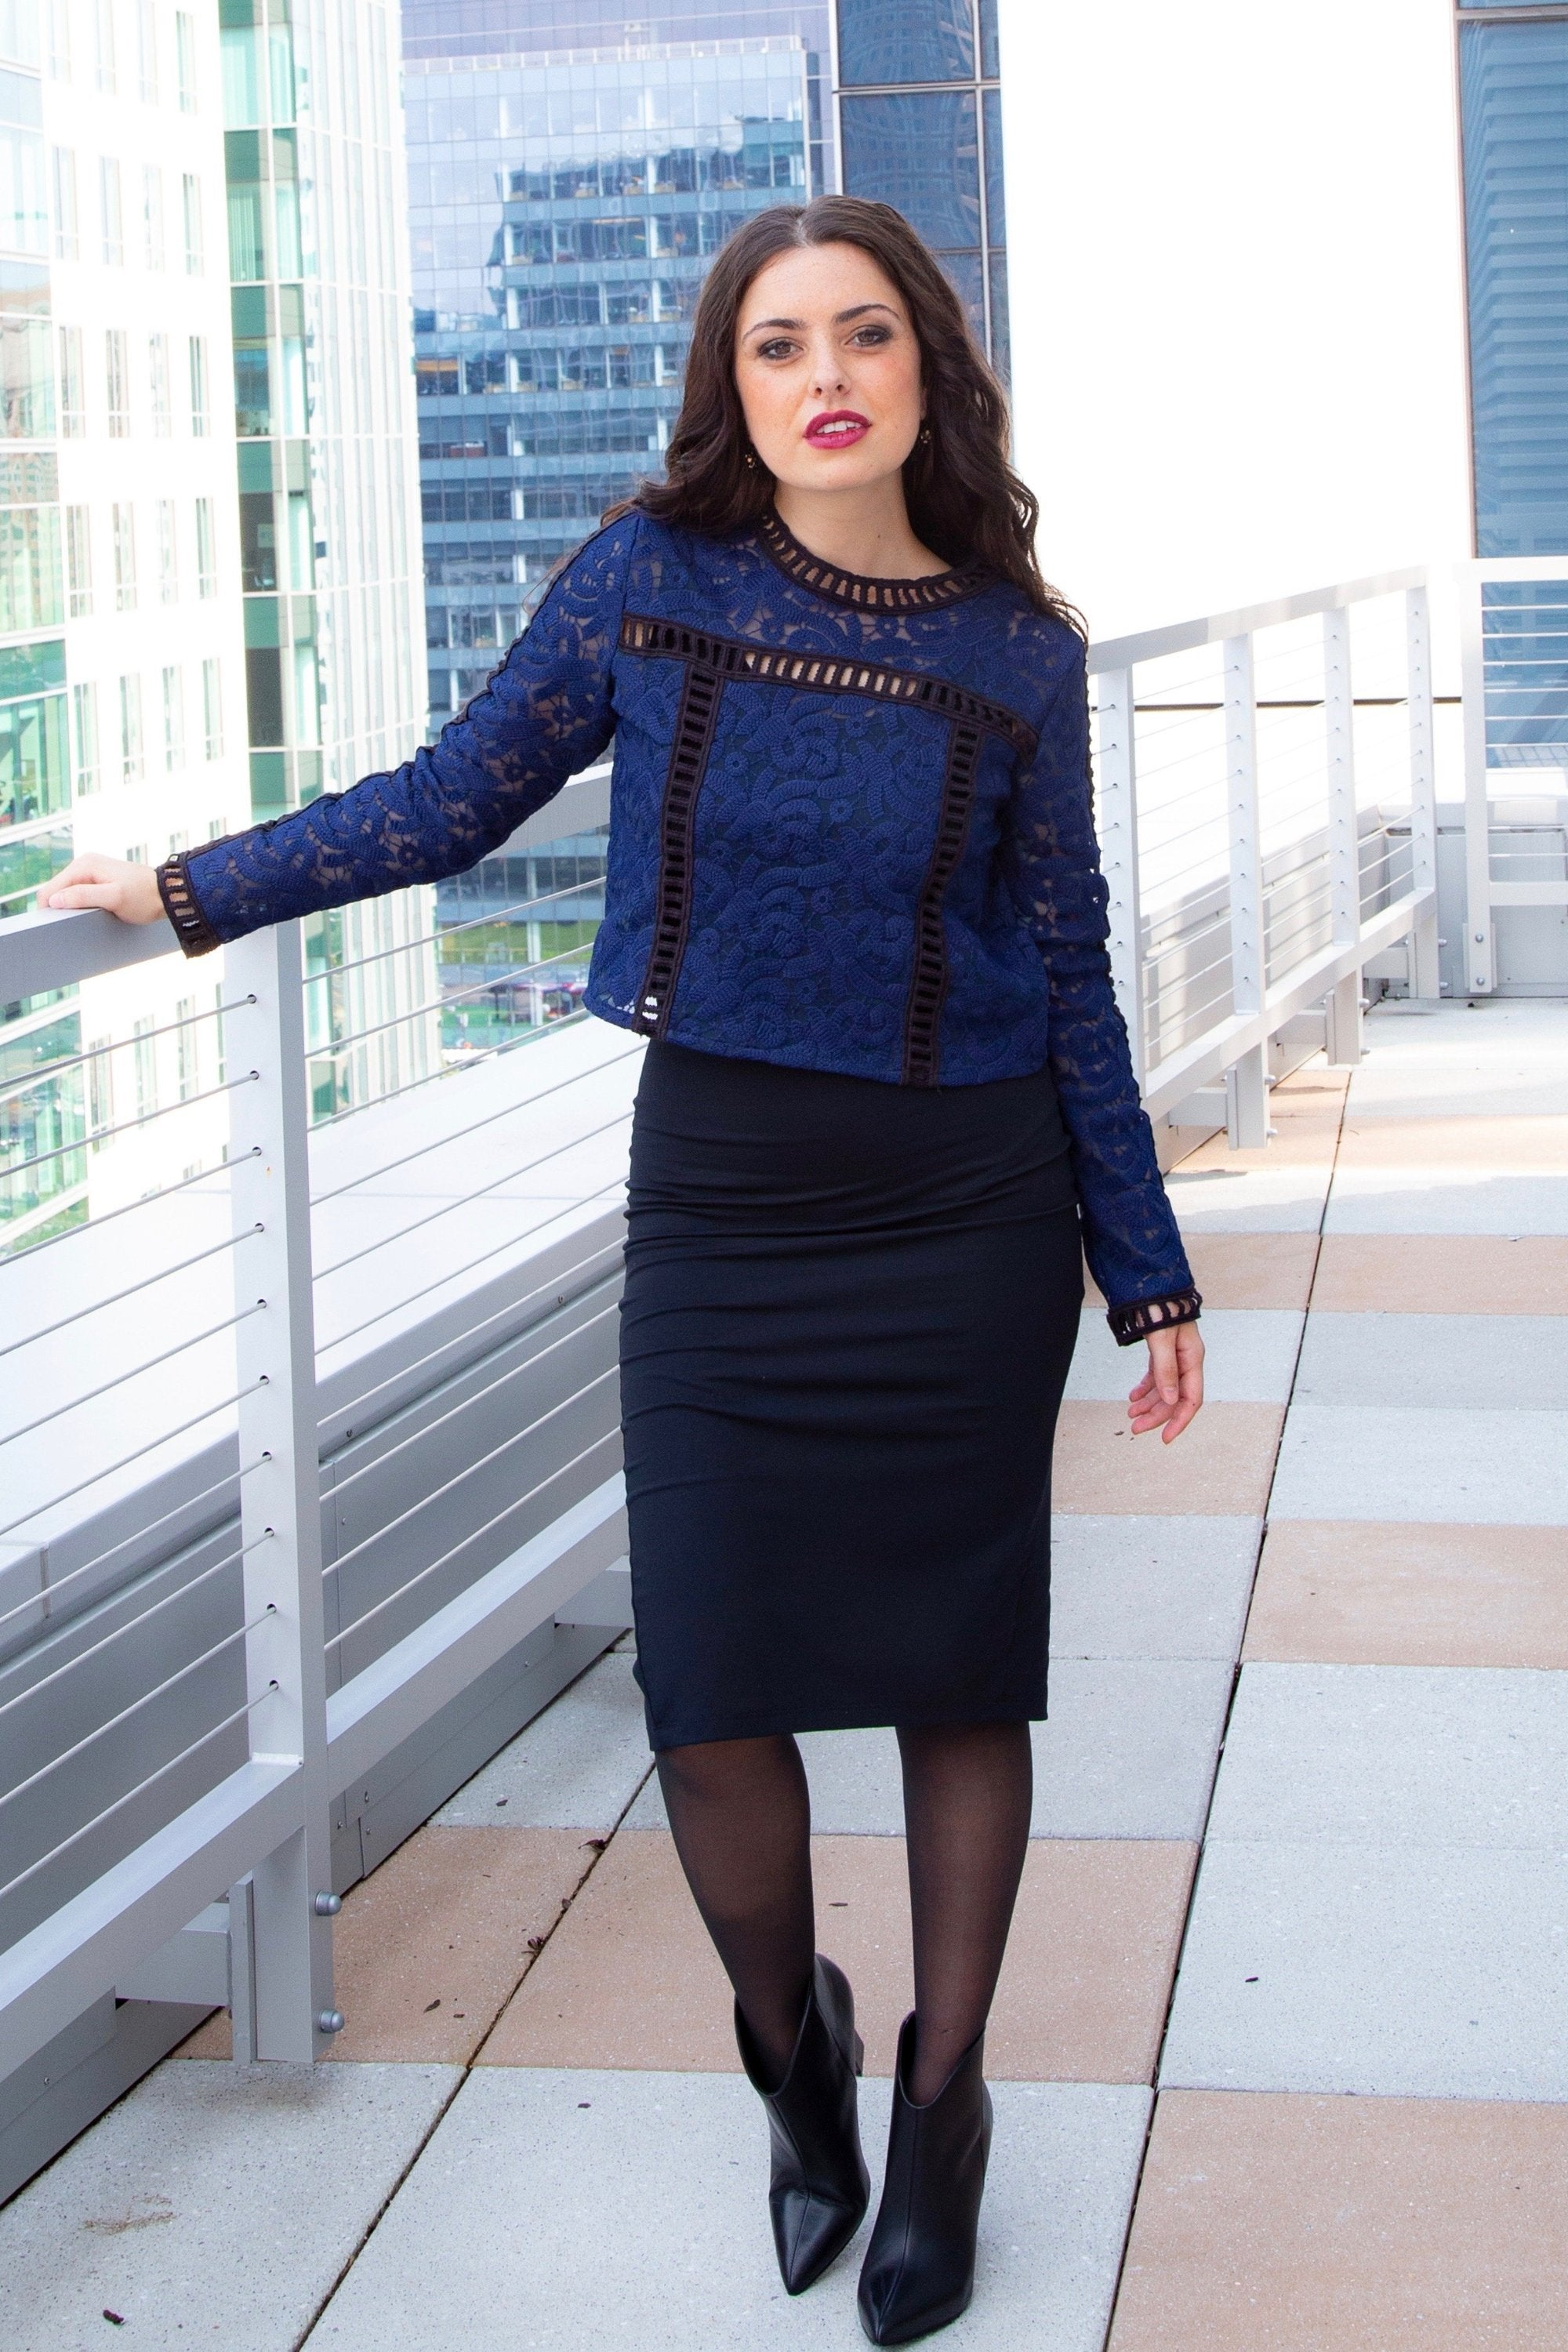 PENNY PENCIL SKIRT - BLACK - Reina Valentina